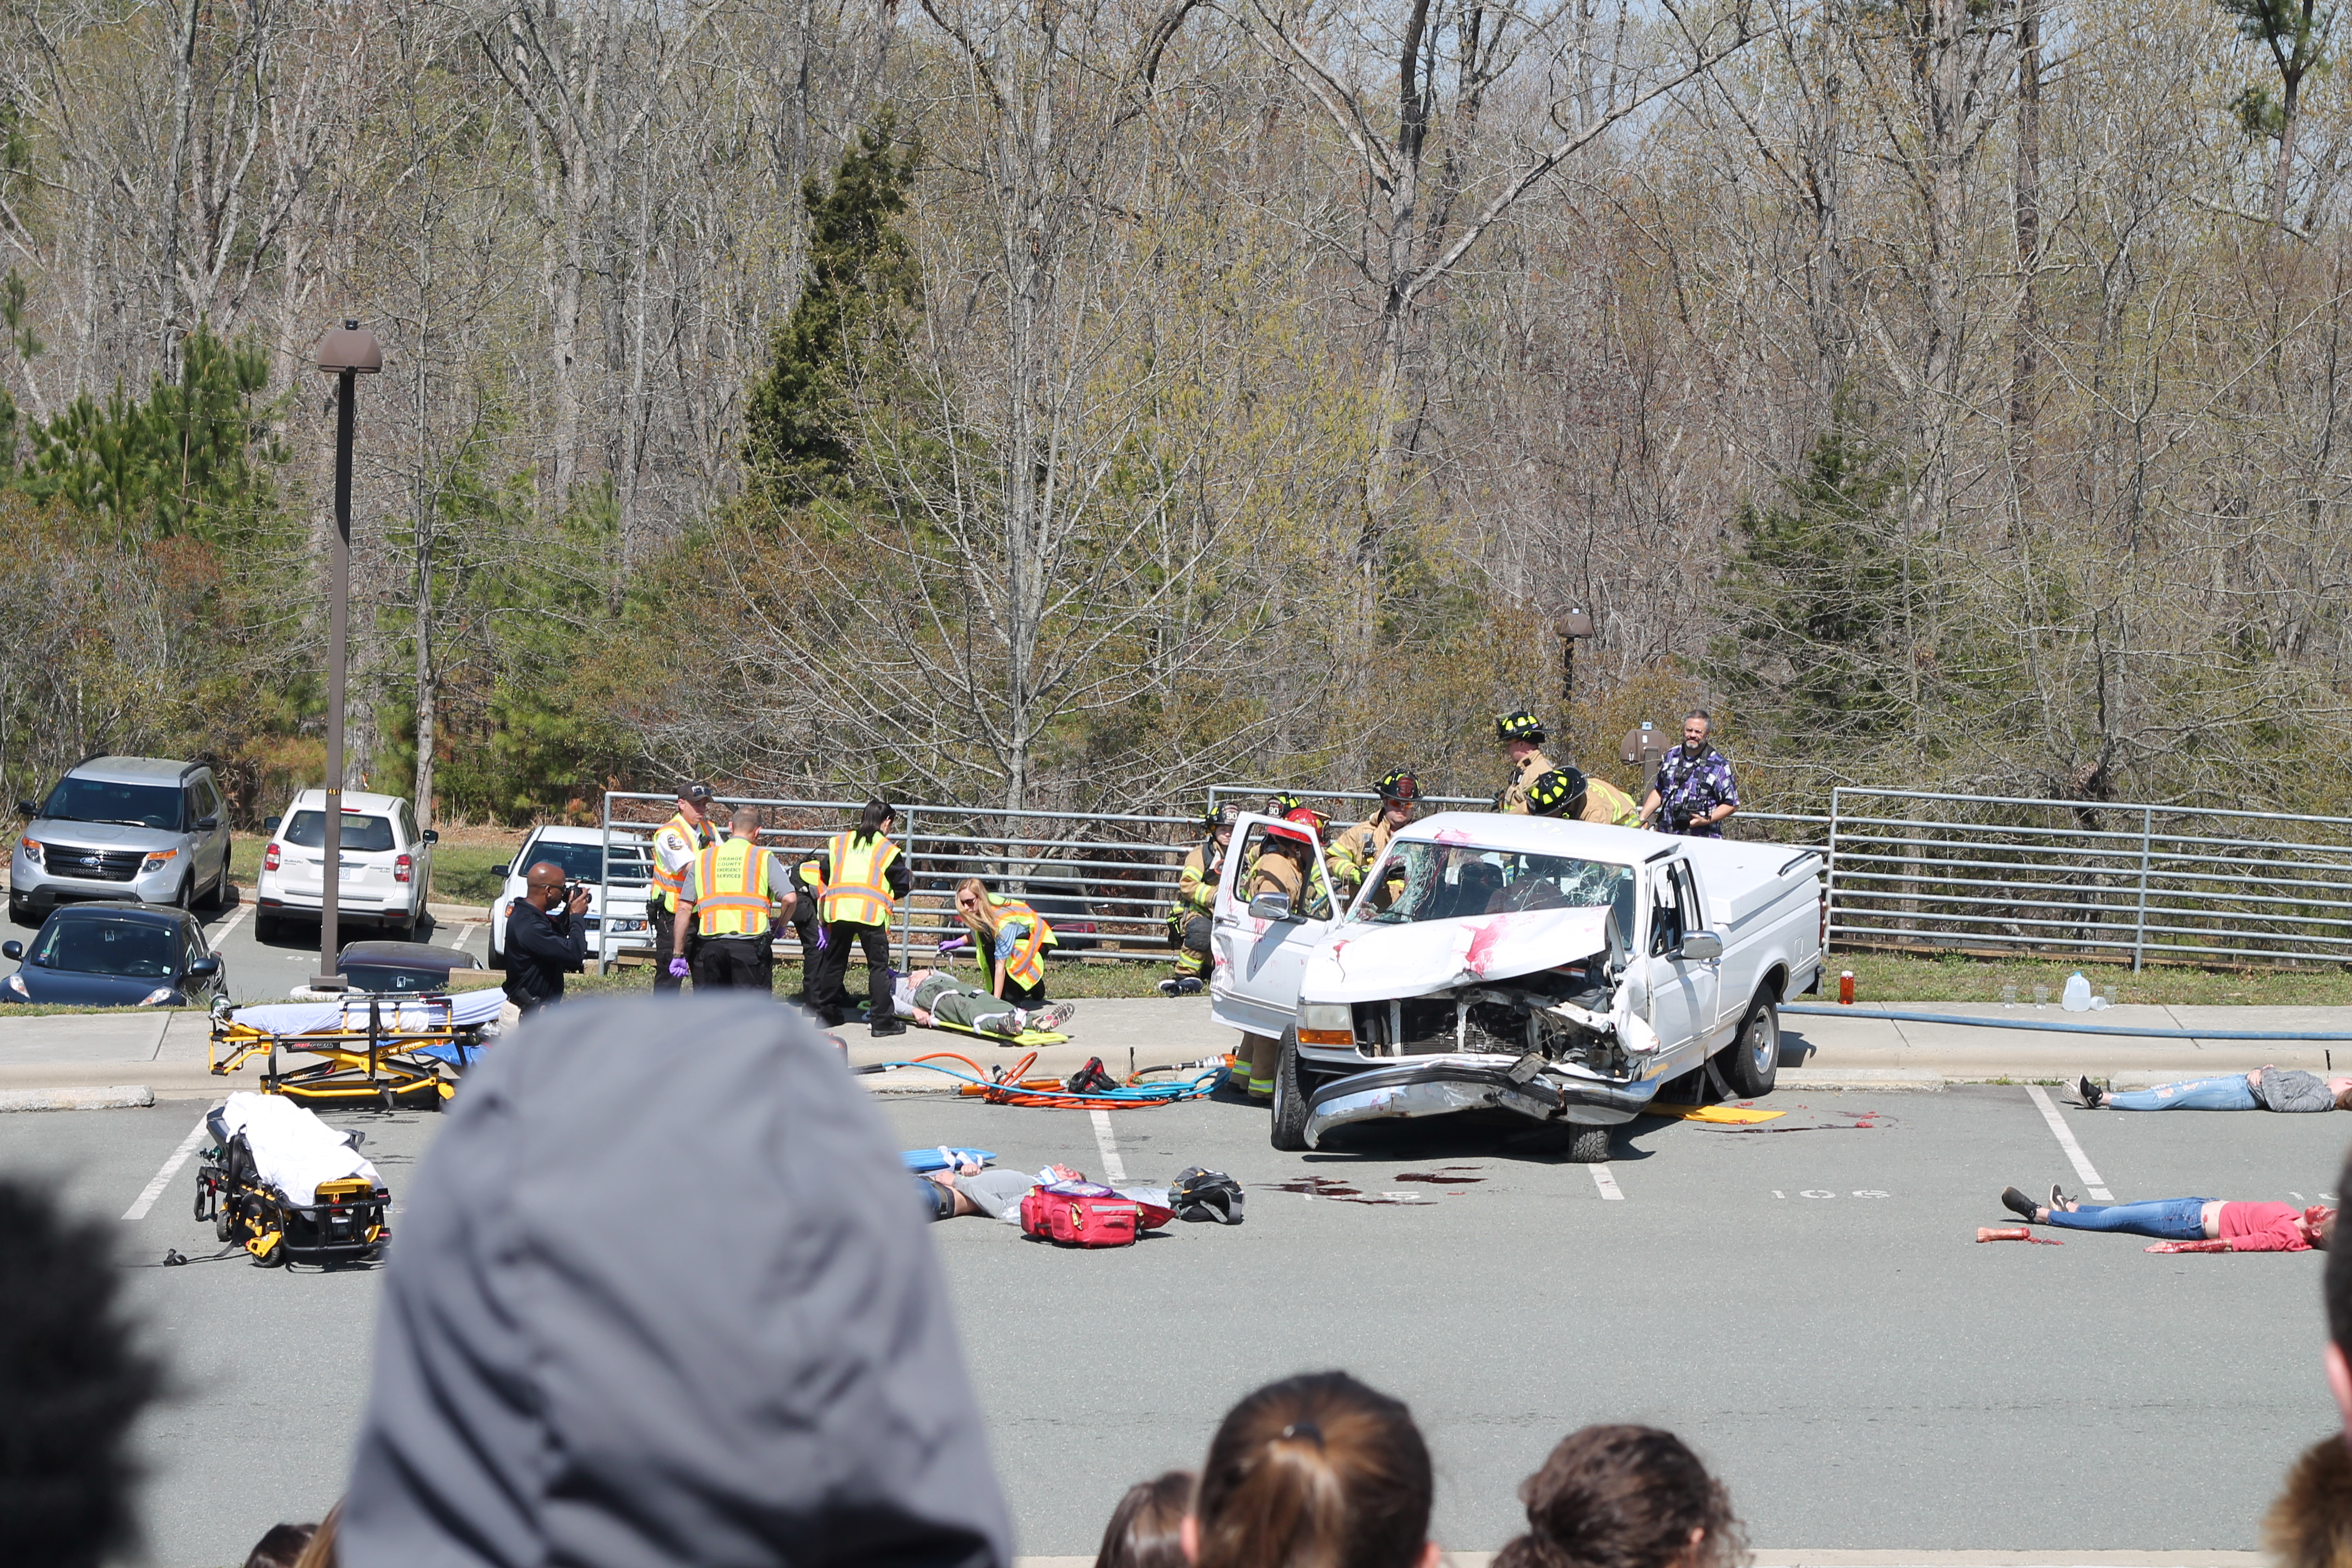 Mock Crash shows dangers of impaired driving